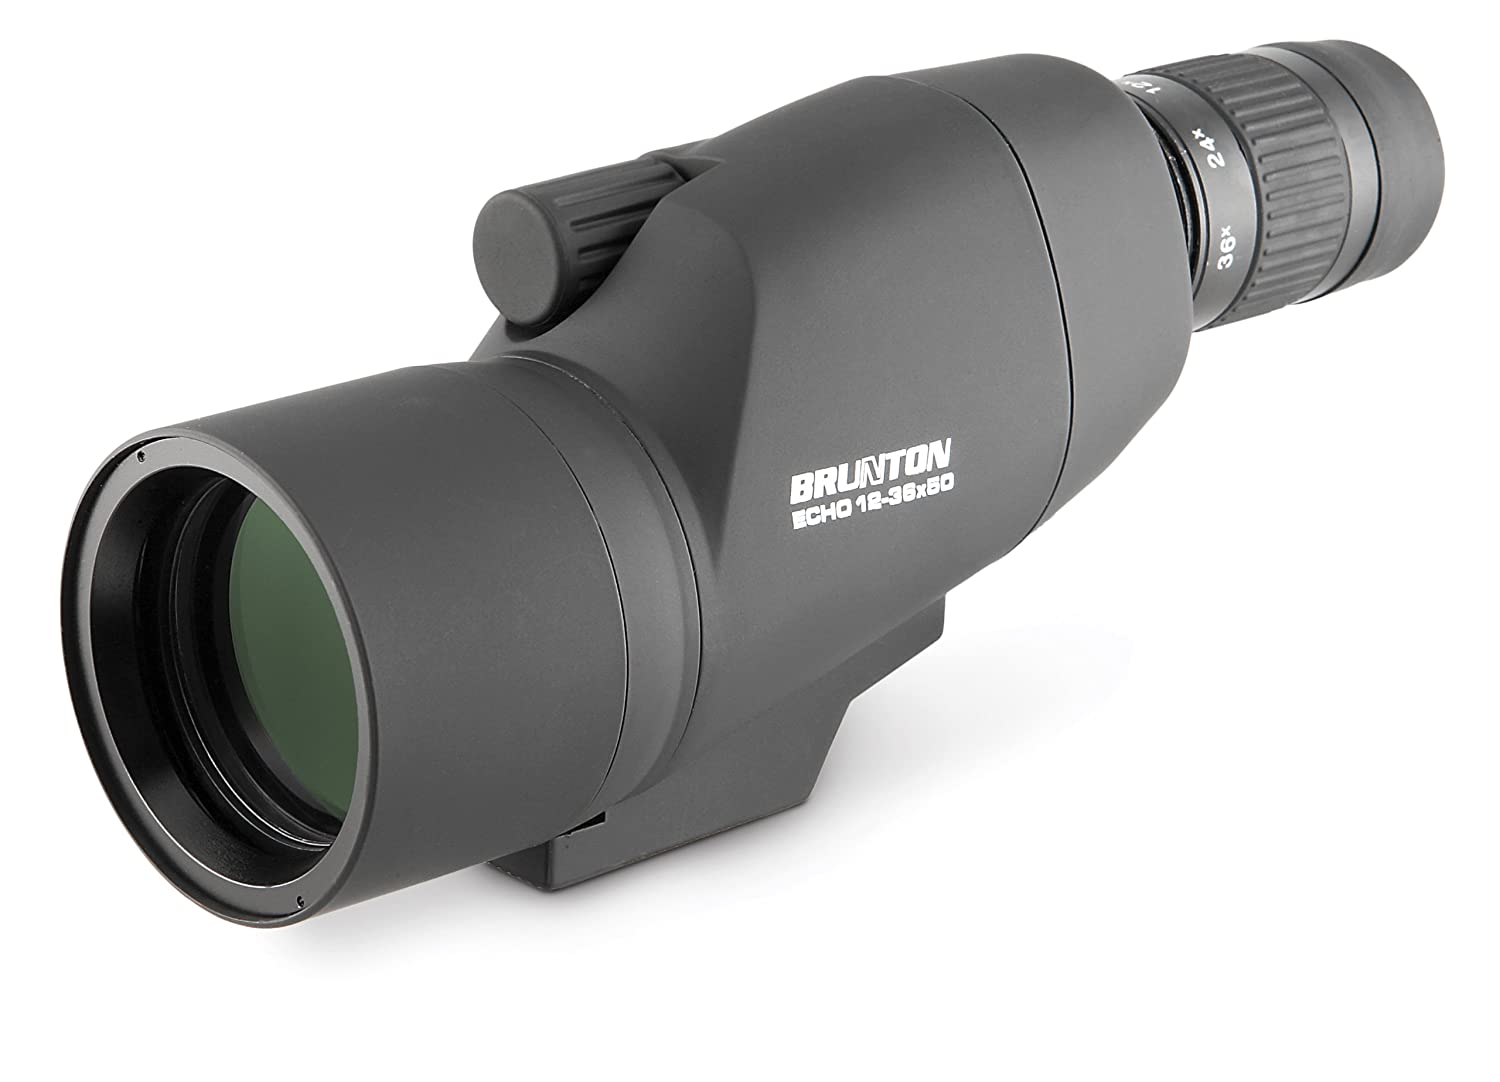 Brunton Fernglas 'Compact' Scope 12-36x50, 1494120